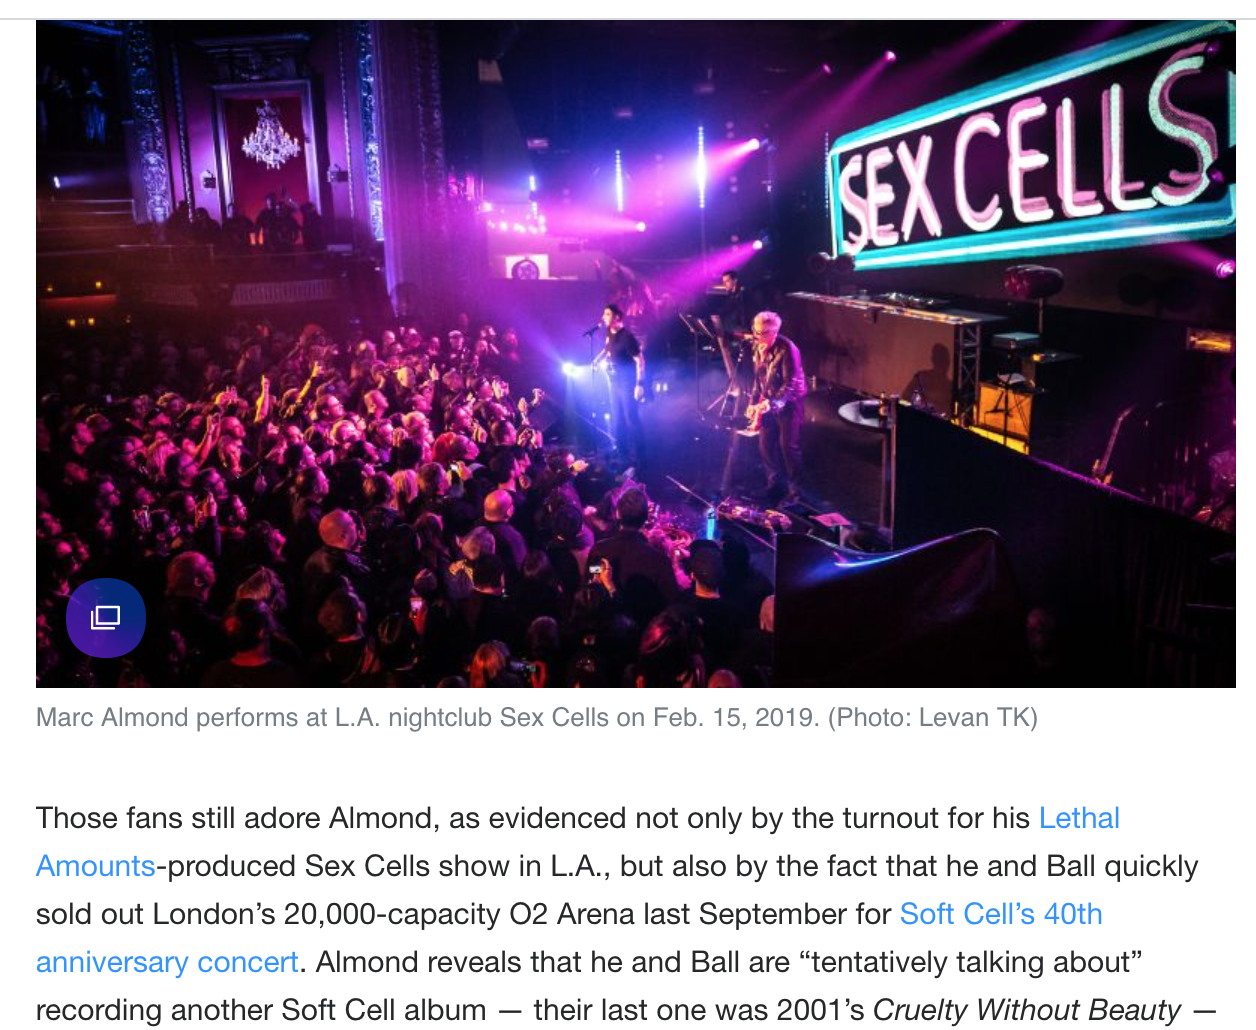 YAHOO! NEWS - Lethal Amounts' Sex Cells 2 year anniversary and Marc Almond performance